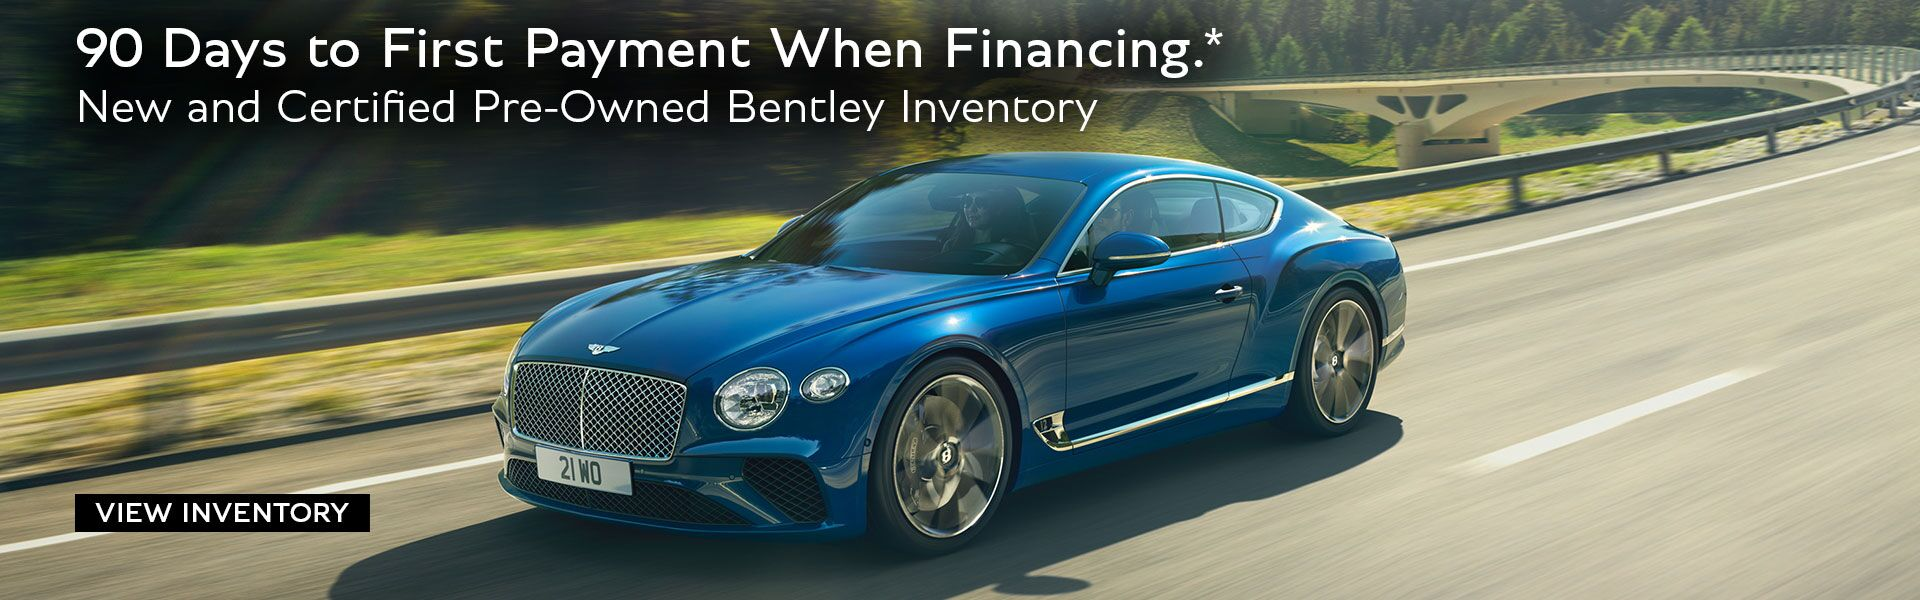 Bentley 90 Day